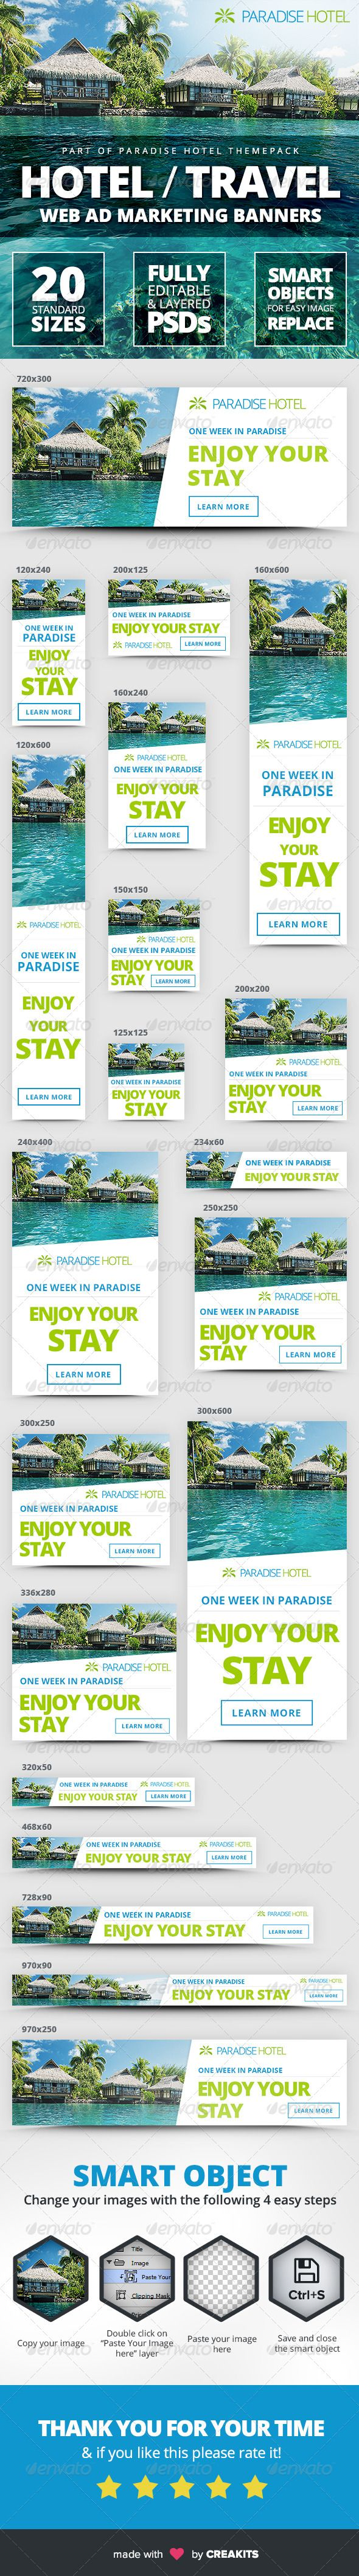 Hotel - Travel Web Ad Marketing Banners - Banners & Ads Web Elements